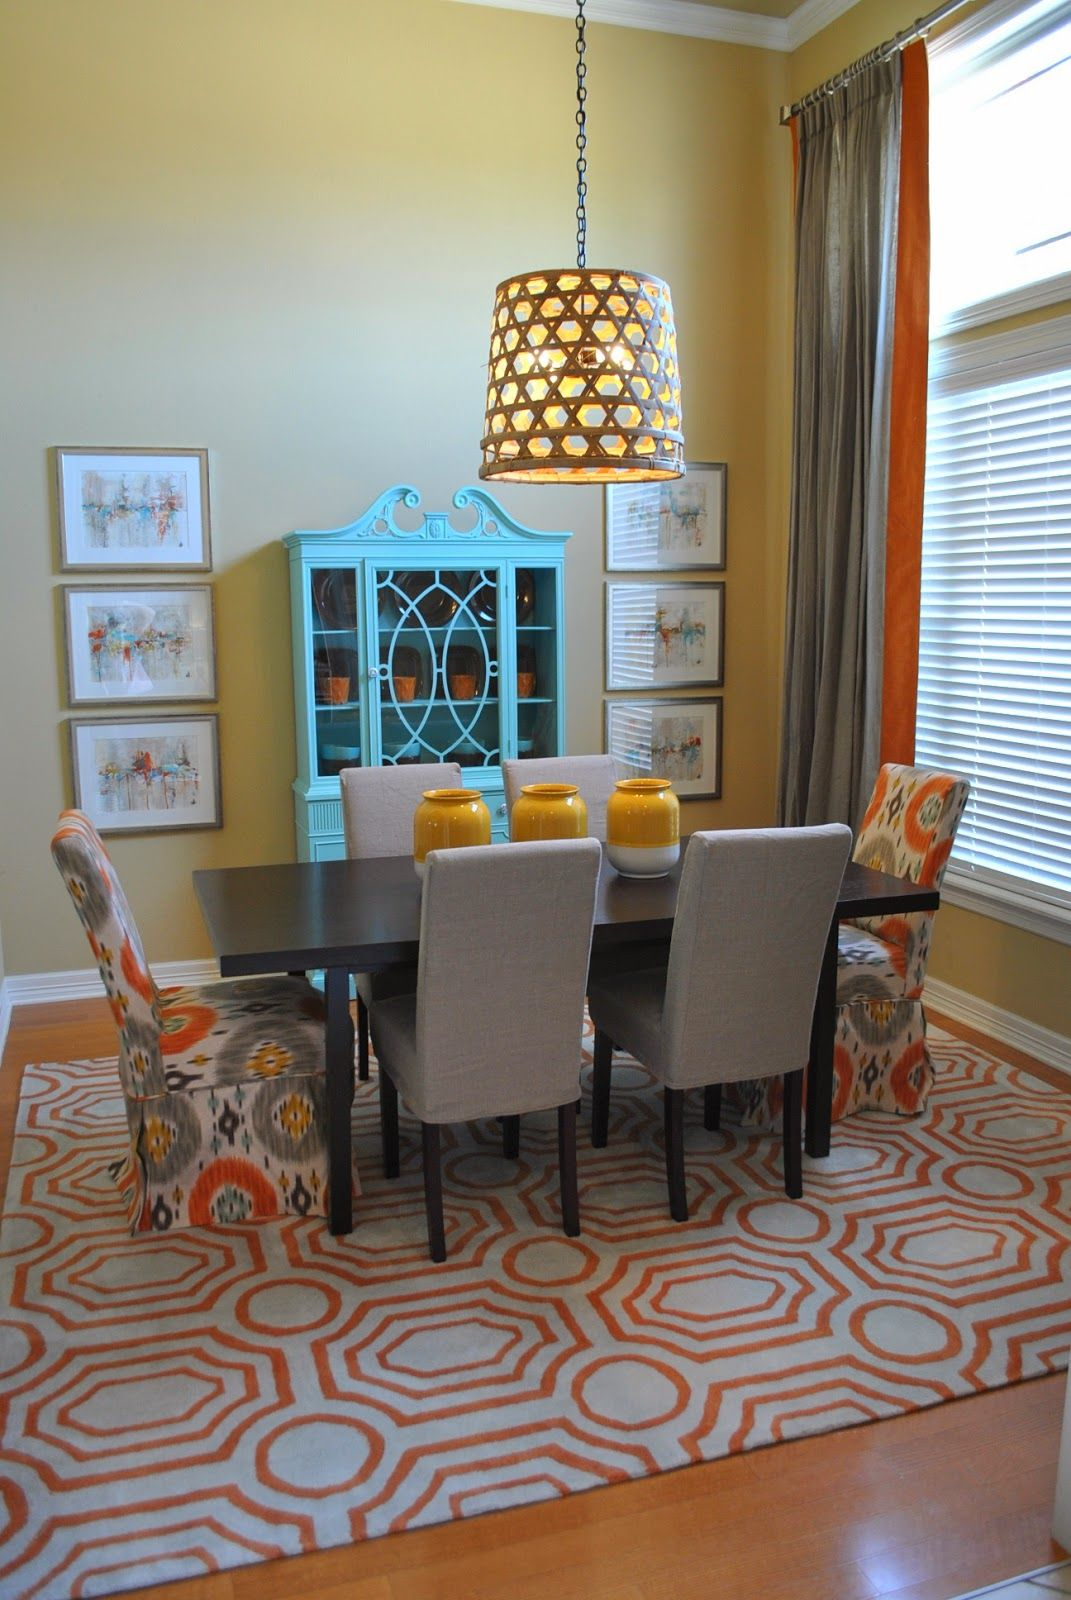 Design Of Dining Room And Living Room: Orange, Blue And Grey Dining Room Makeover (The Francis